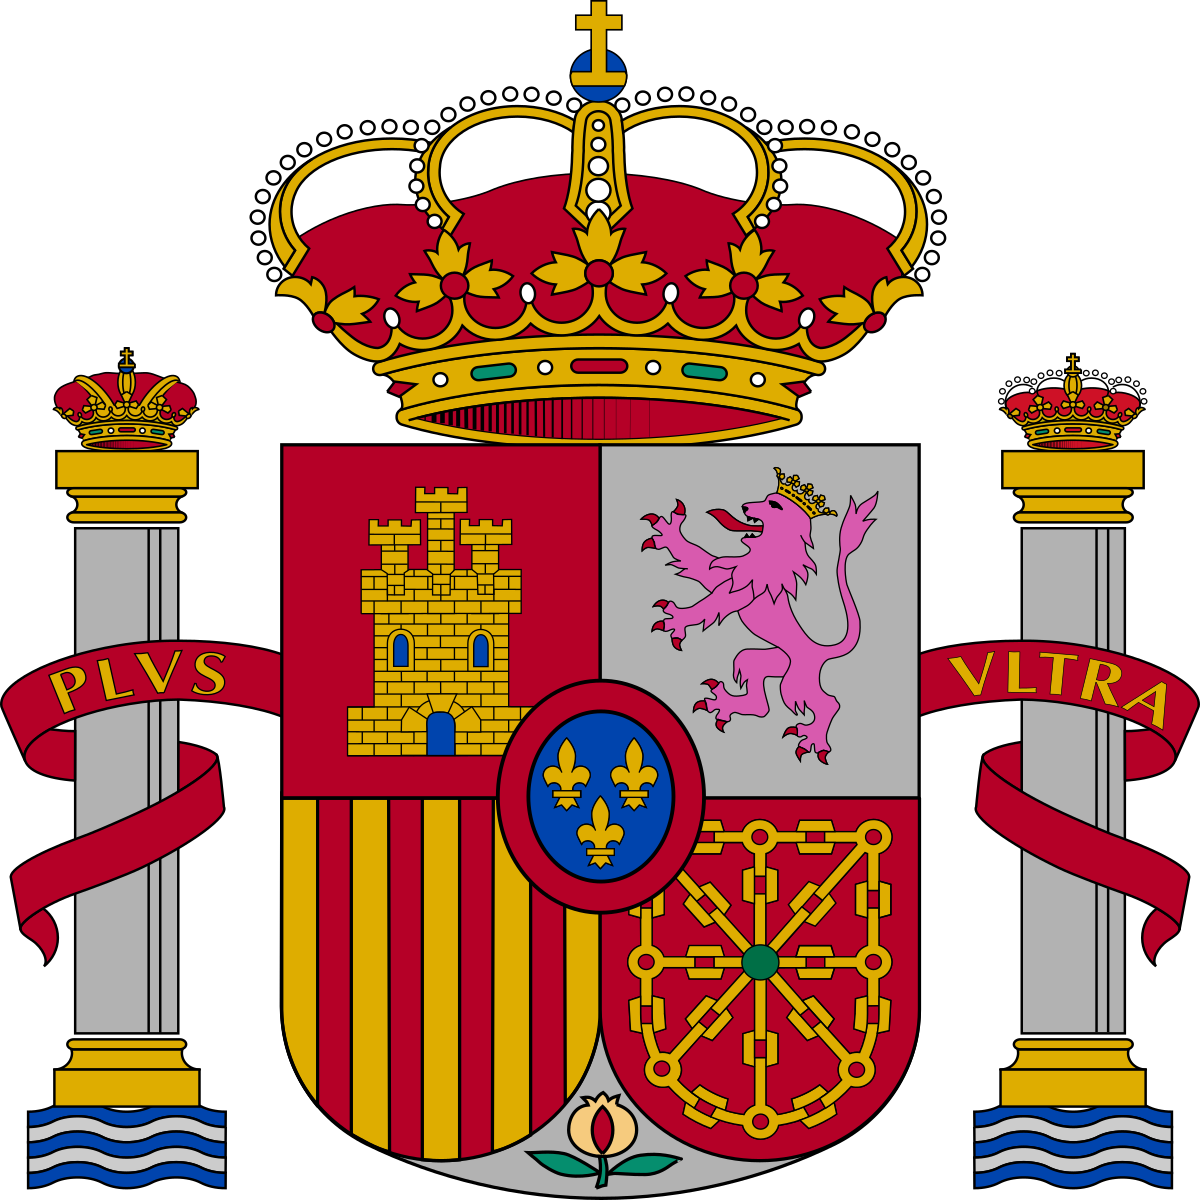 Voting clipart indirect democracy. Spanish nationality law wikipedia